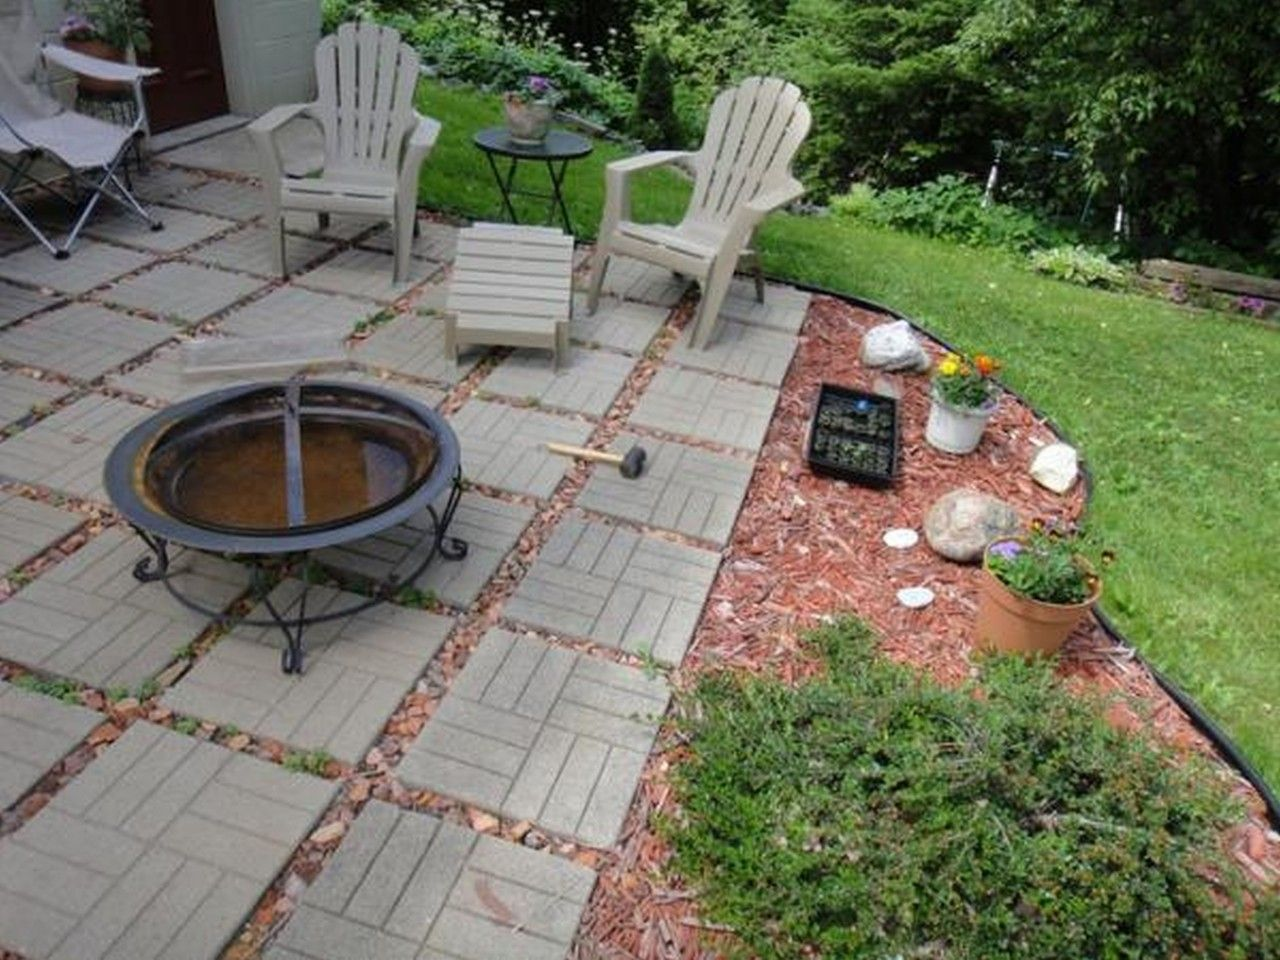 Patio Design Ideas On A Budget small patio design ideas on a budget covered patio ideas wood with covered patios ideas 1000 Images About Yard On Pinterest Railroad Tie Retaining Wall Swing Sets And Pea Gravel Patio